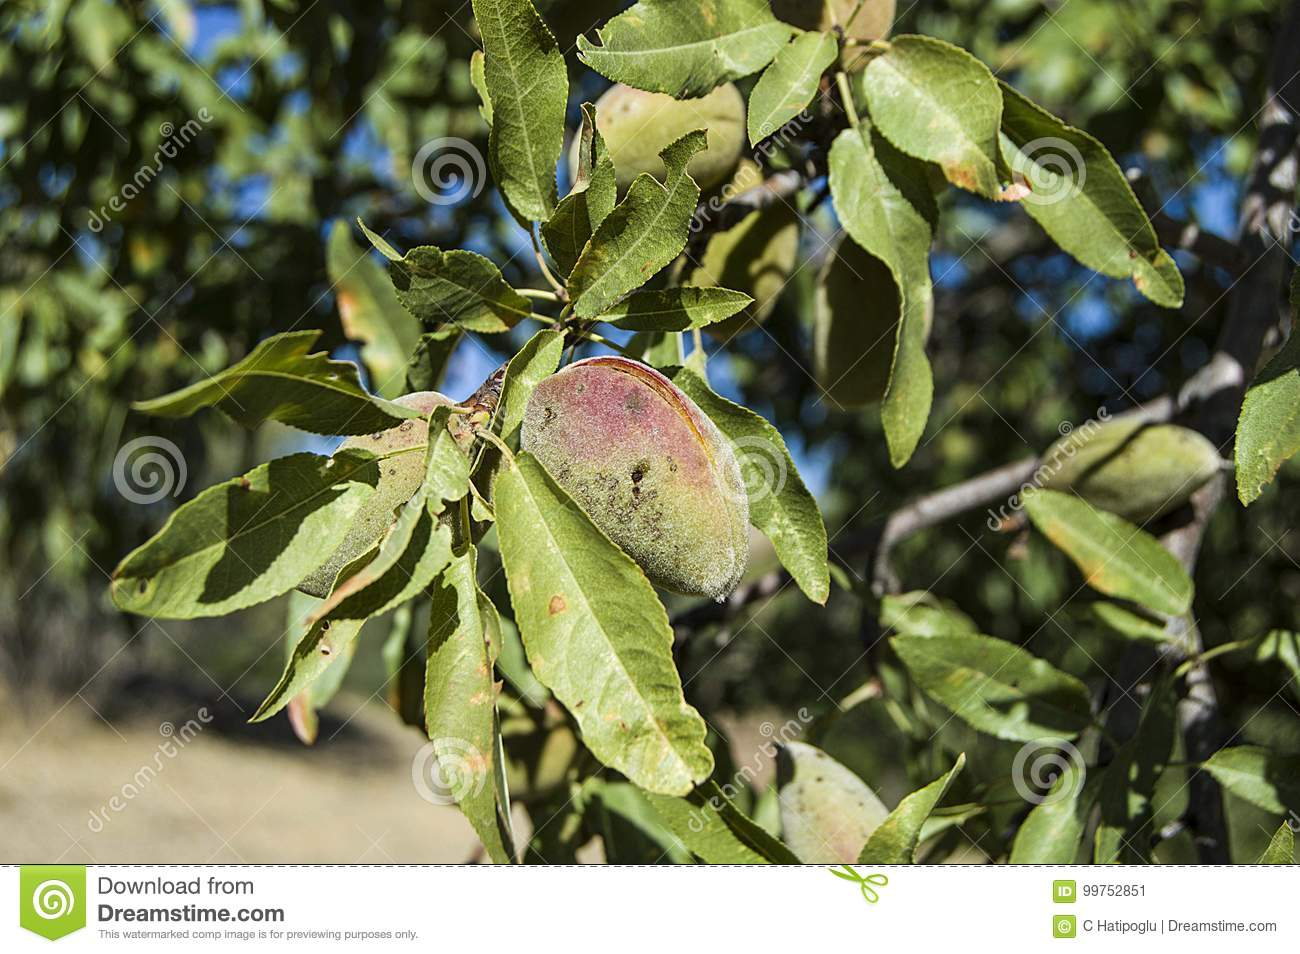 Almond tree mature